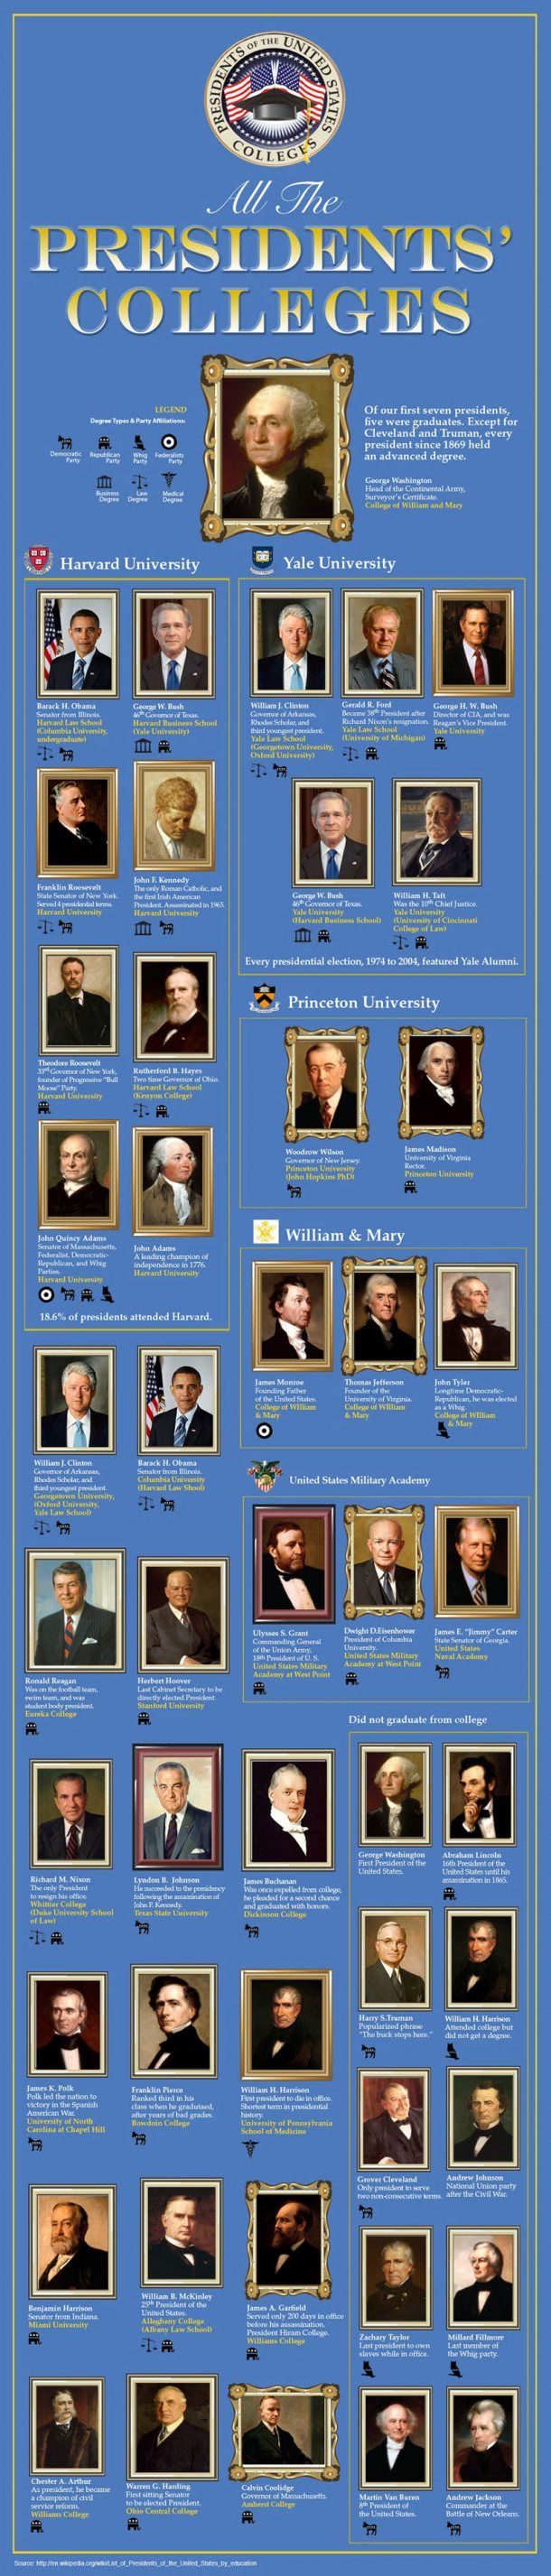 Colleges & universities where Presidents attended